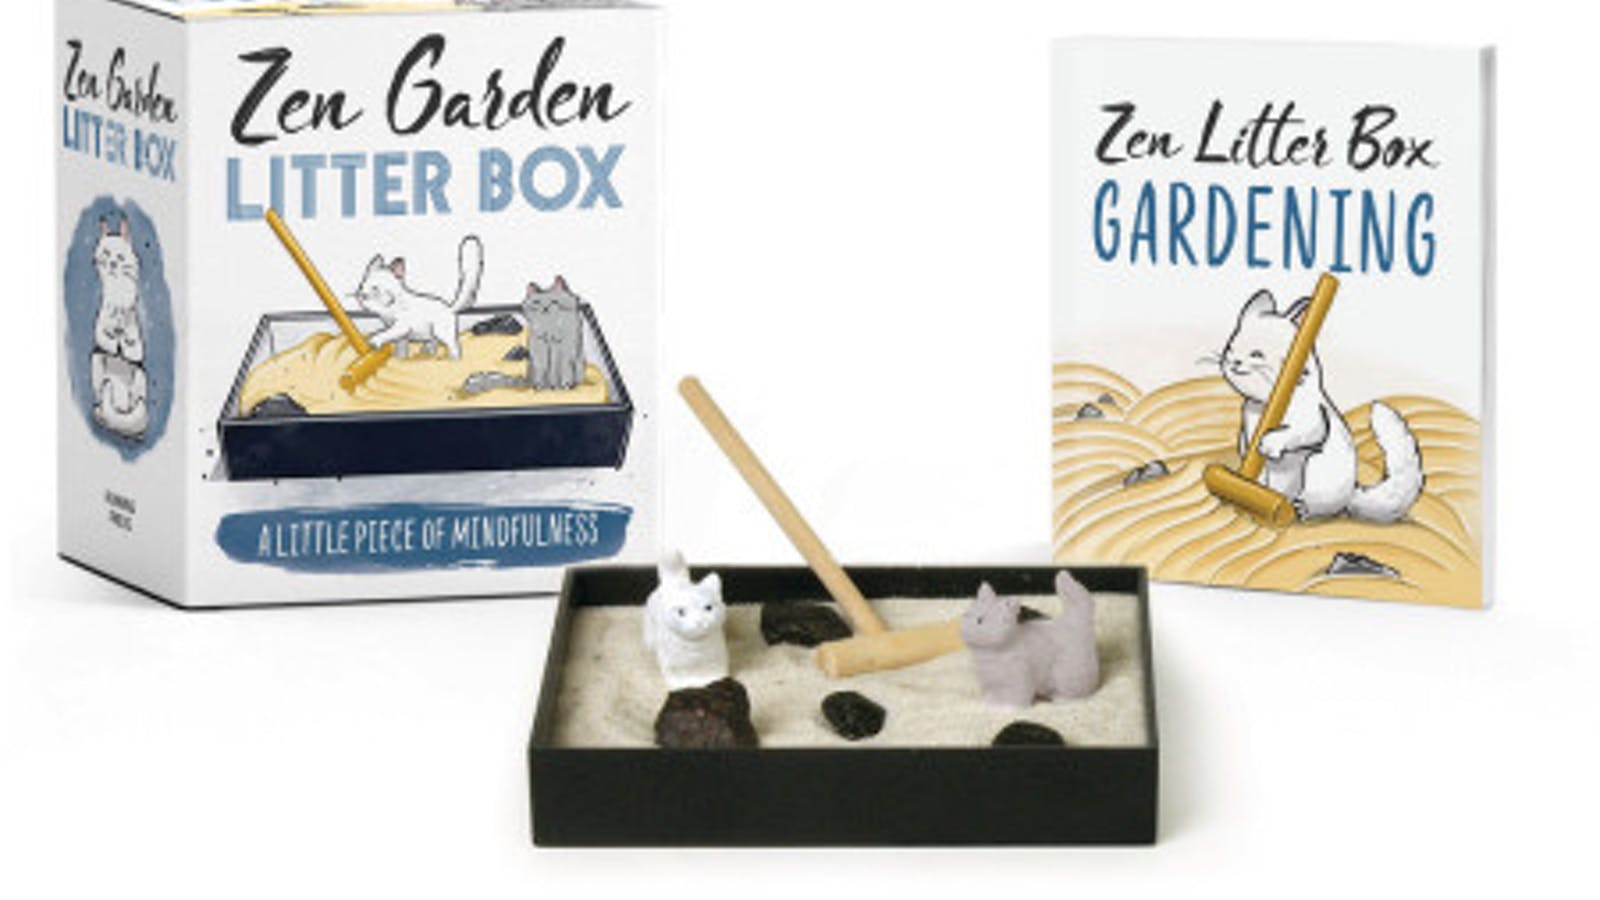 Running Press Zen Garden Litter Box: A Little Piece of Mindfulness